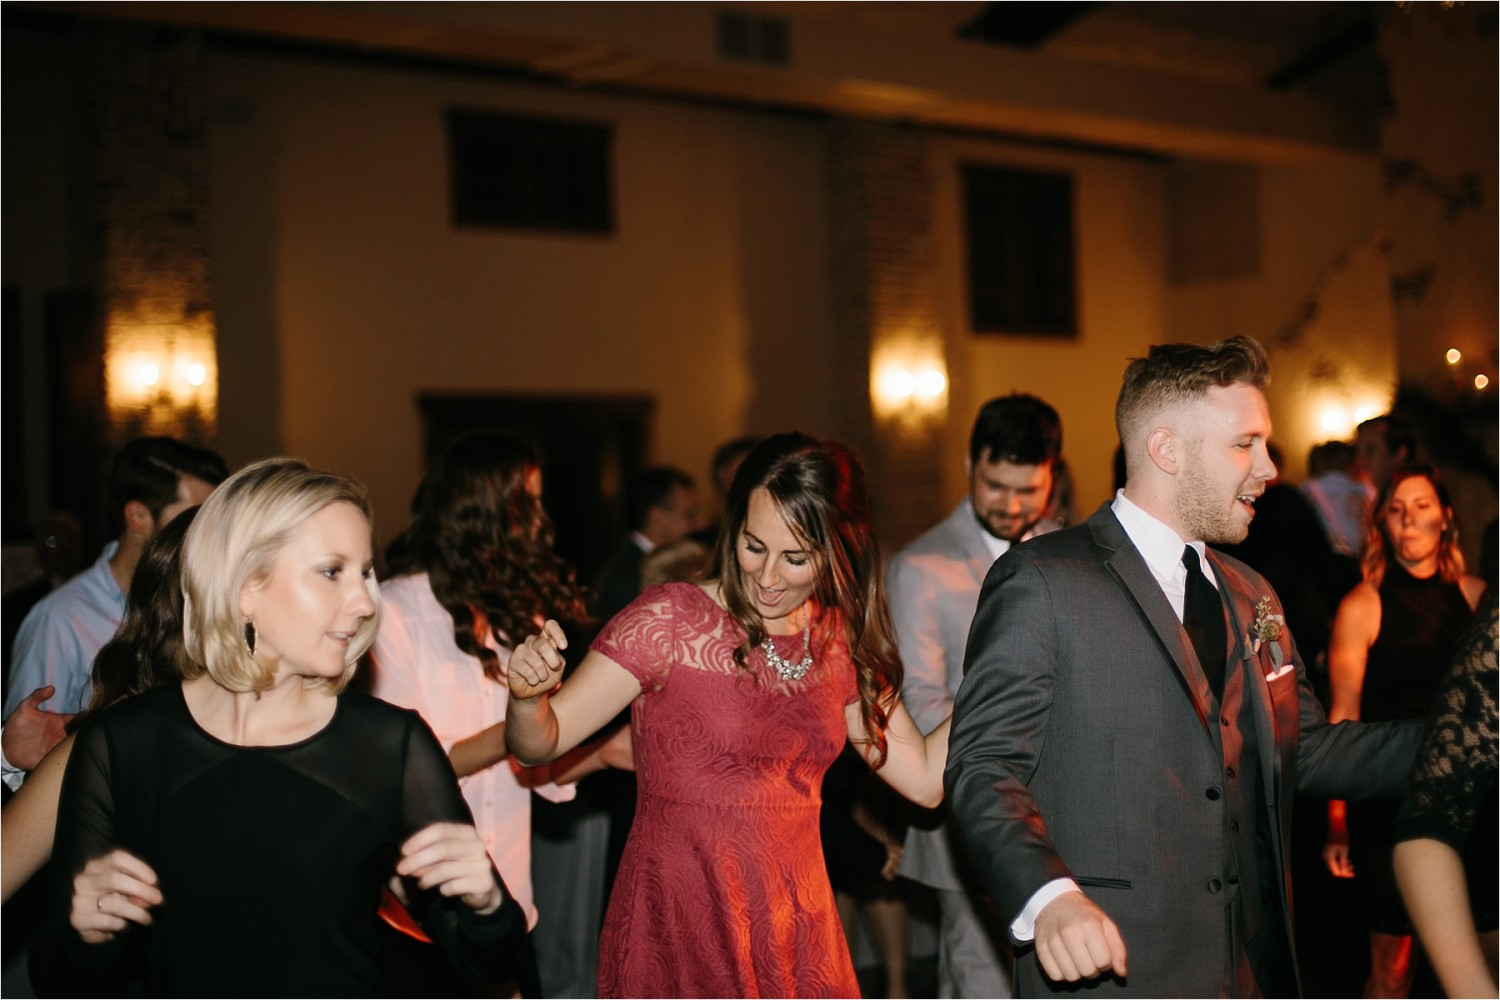 brad-lara-__-a-grey-and-blush-pink-intimate-wedding-at-hidden-waters-event-center-in-waxahachie-tx-by-north-texas-wedding-photographer-rachel-meagan-photography-_-090